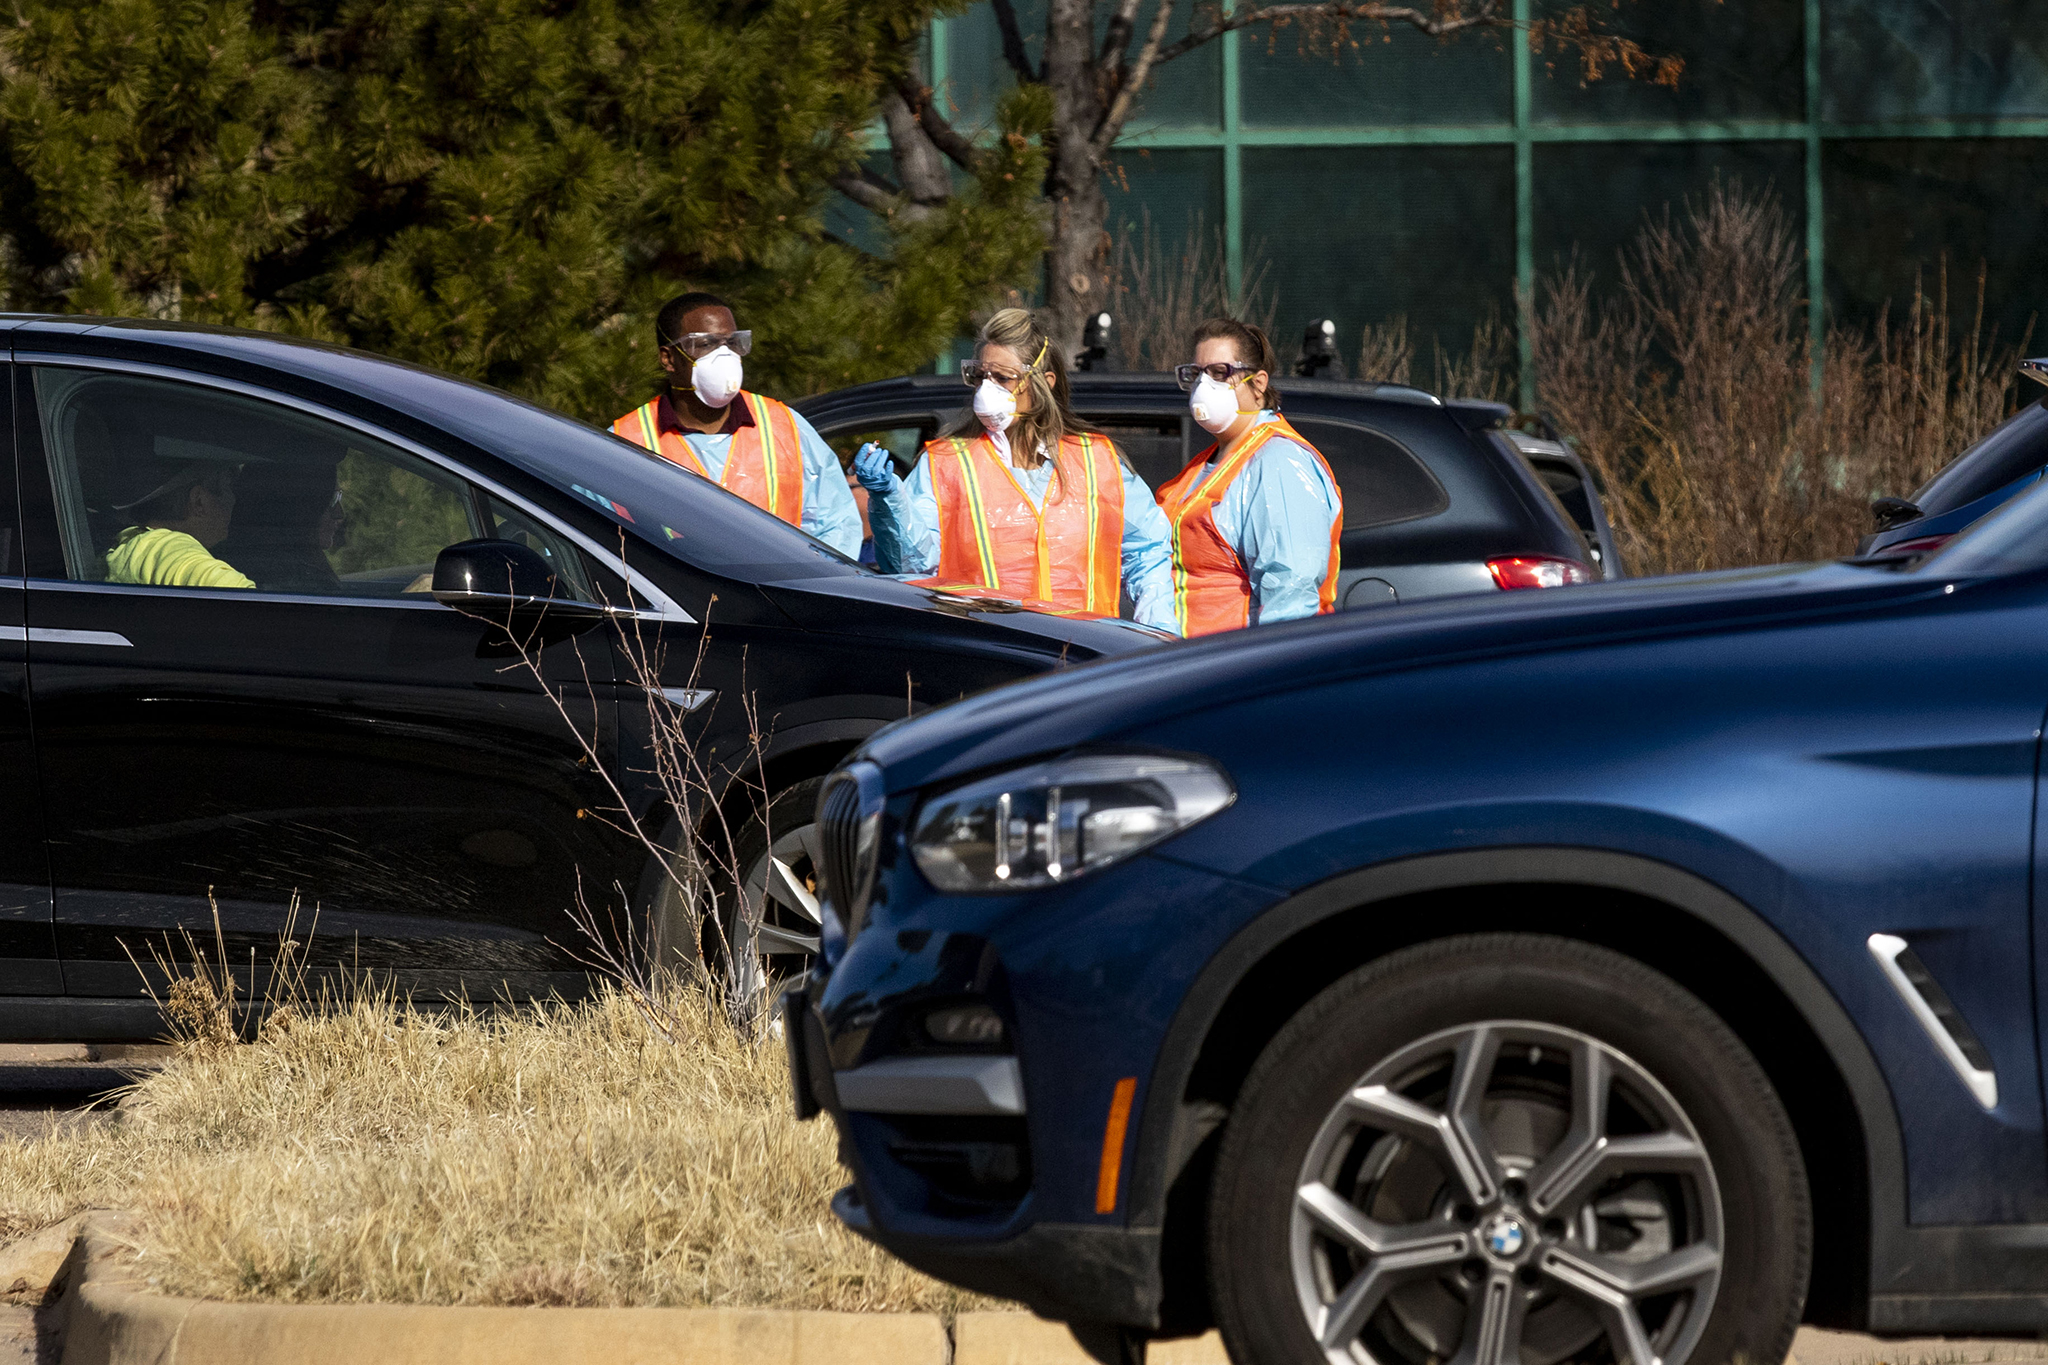 Workers survey people in cars waiting to be tested at the Colorado Department of Health and Environment's COVID-19 testing station in Lowry. March 11, 2020. (Kevin J. Beaty/Denverite)